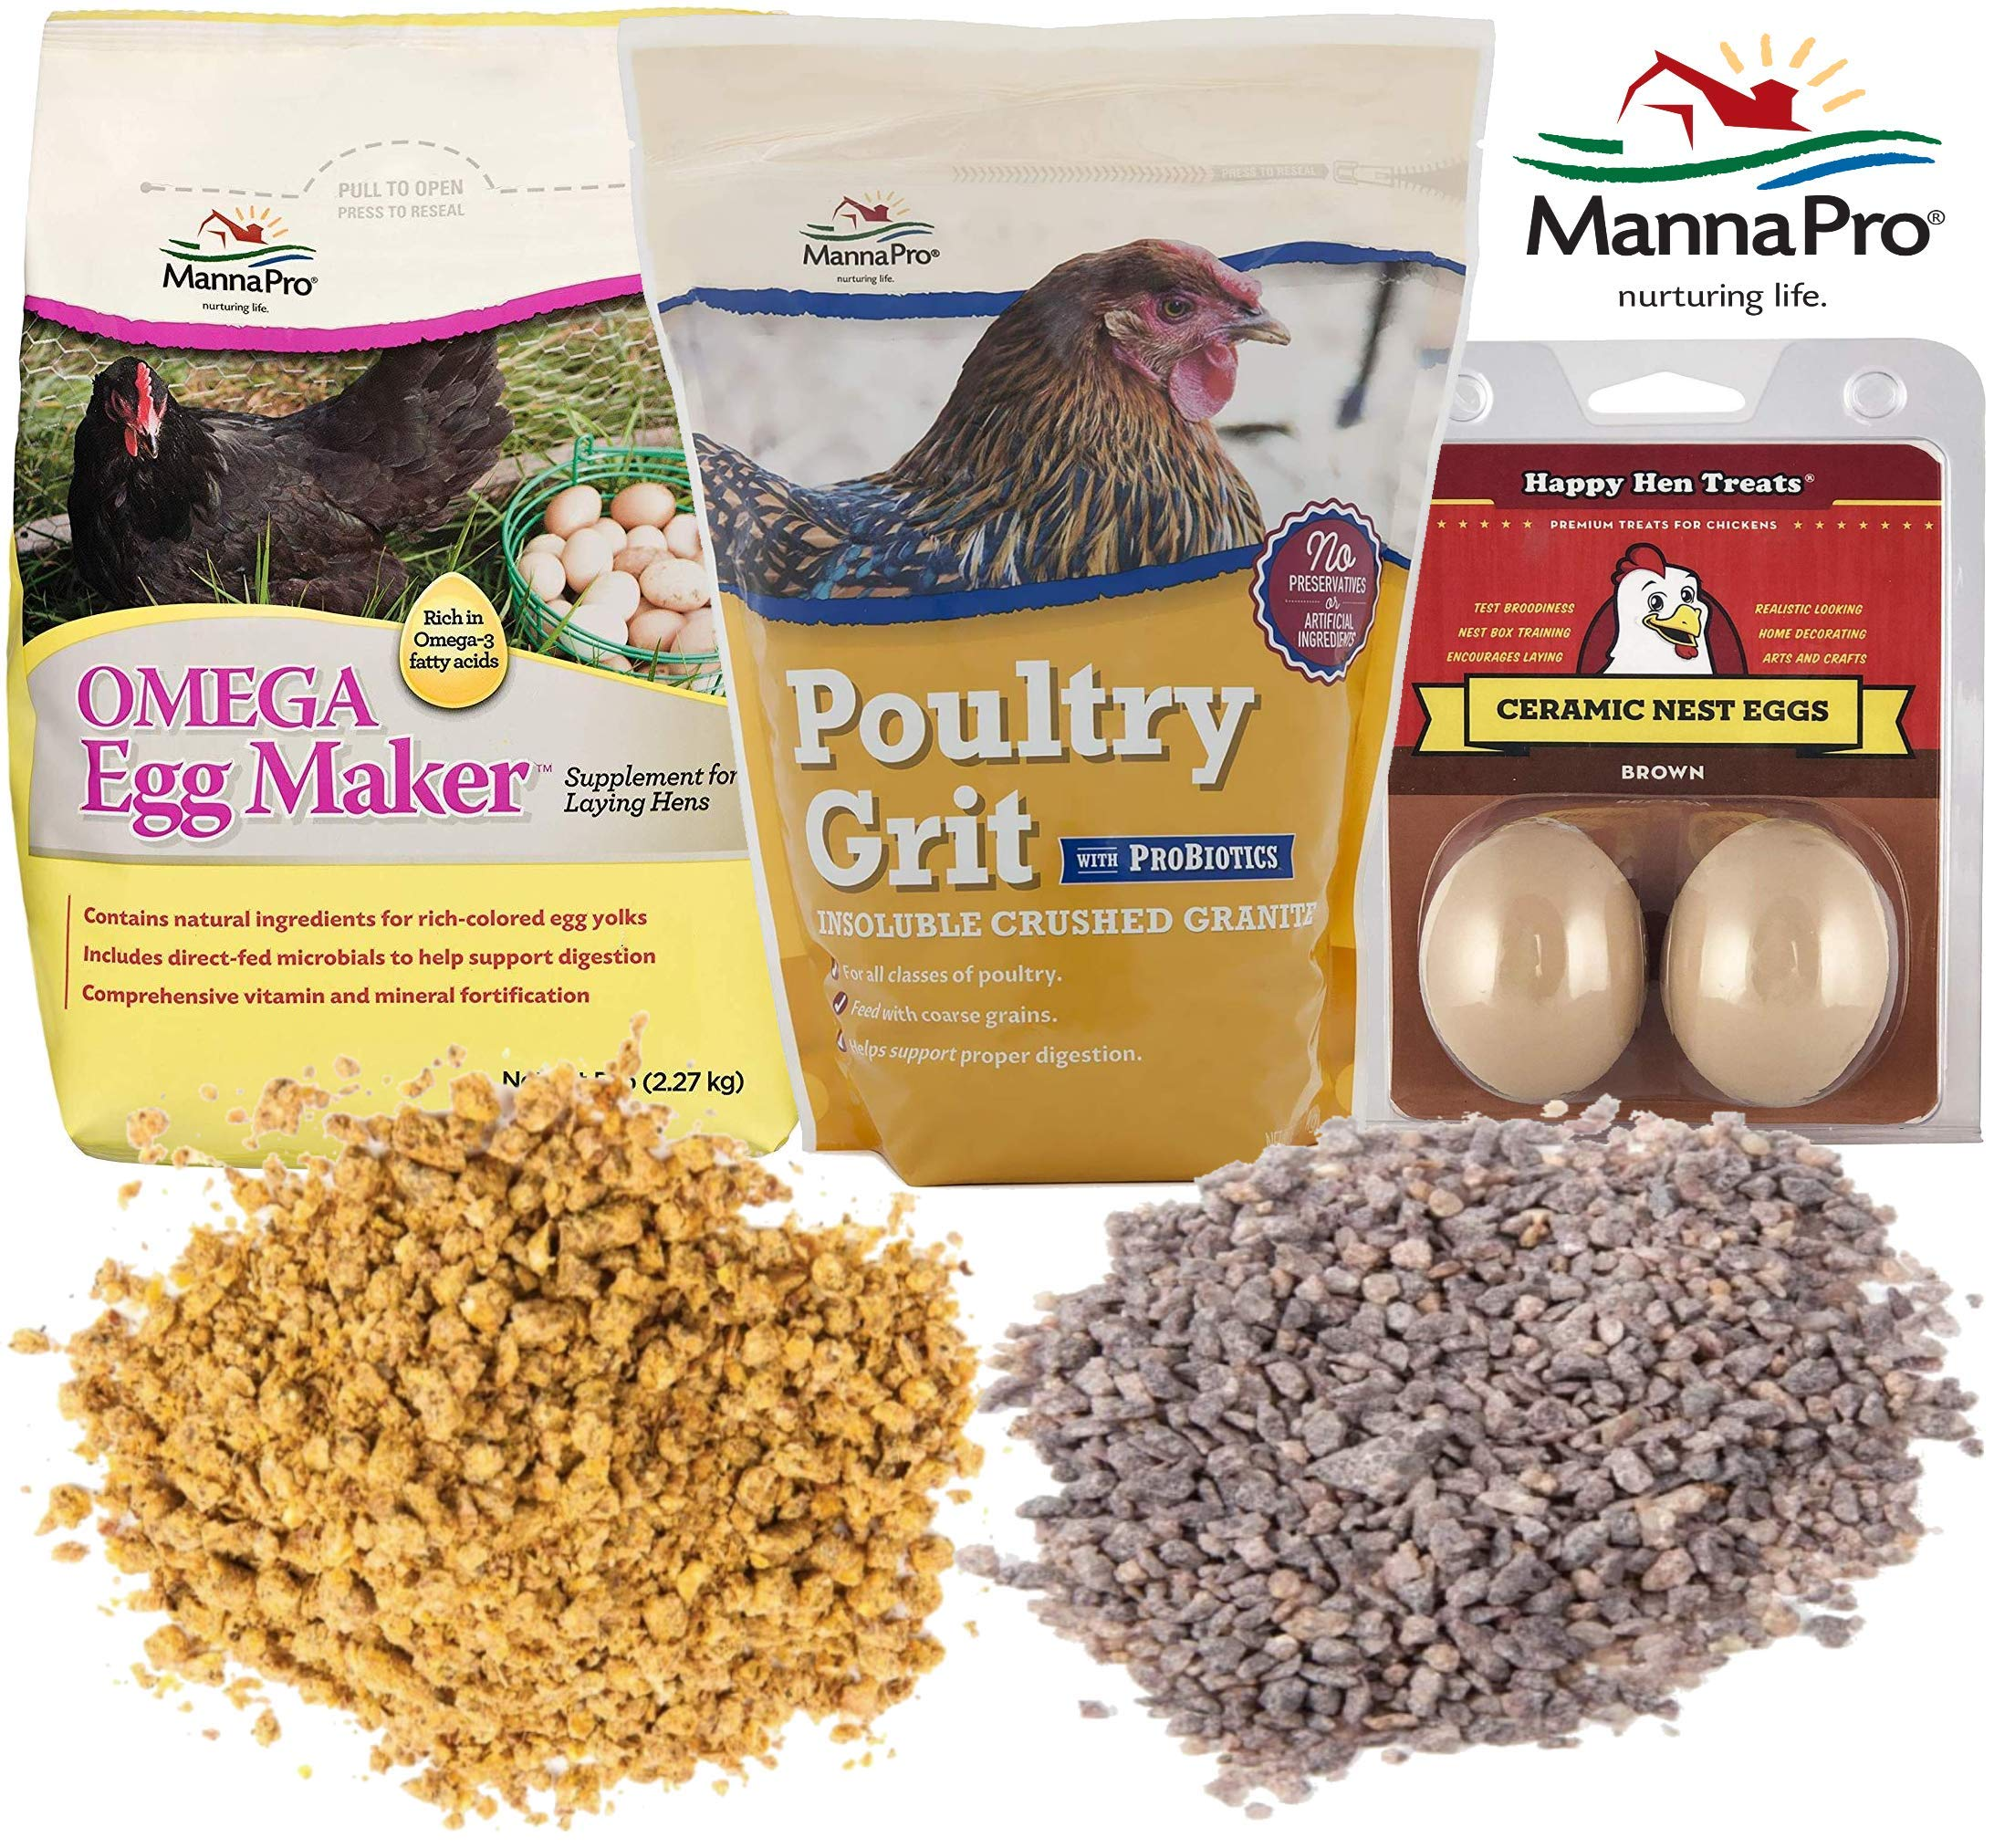 Manna Pro Chicken Feed Supplies Value Pack - Omega Egg Maker Supplement for Laying Hens, 5lb with Poultry Grit & Probiotics, Insoluble Crushed Granite, 5lb and Happy Hen Ceramic Nest Eggs for Brooding by Manna Pro